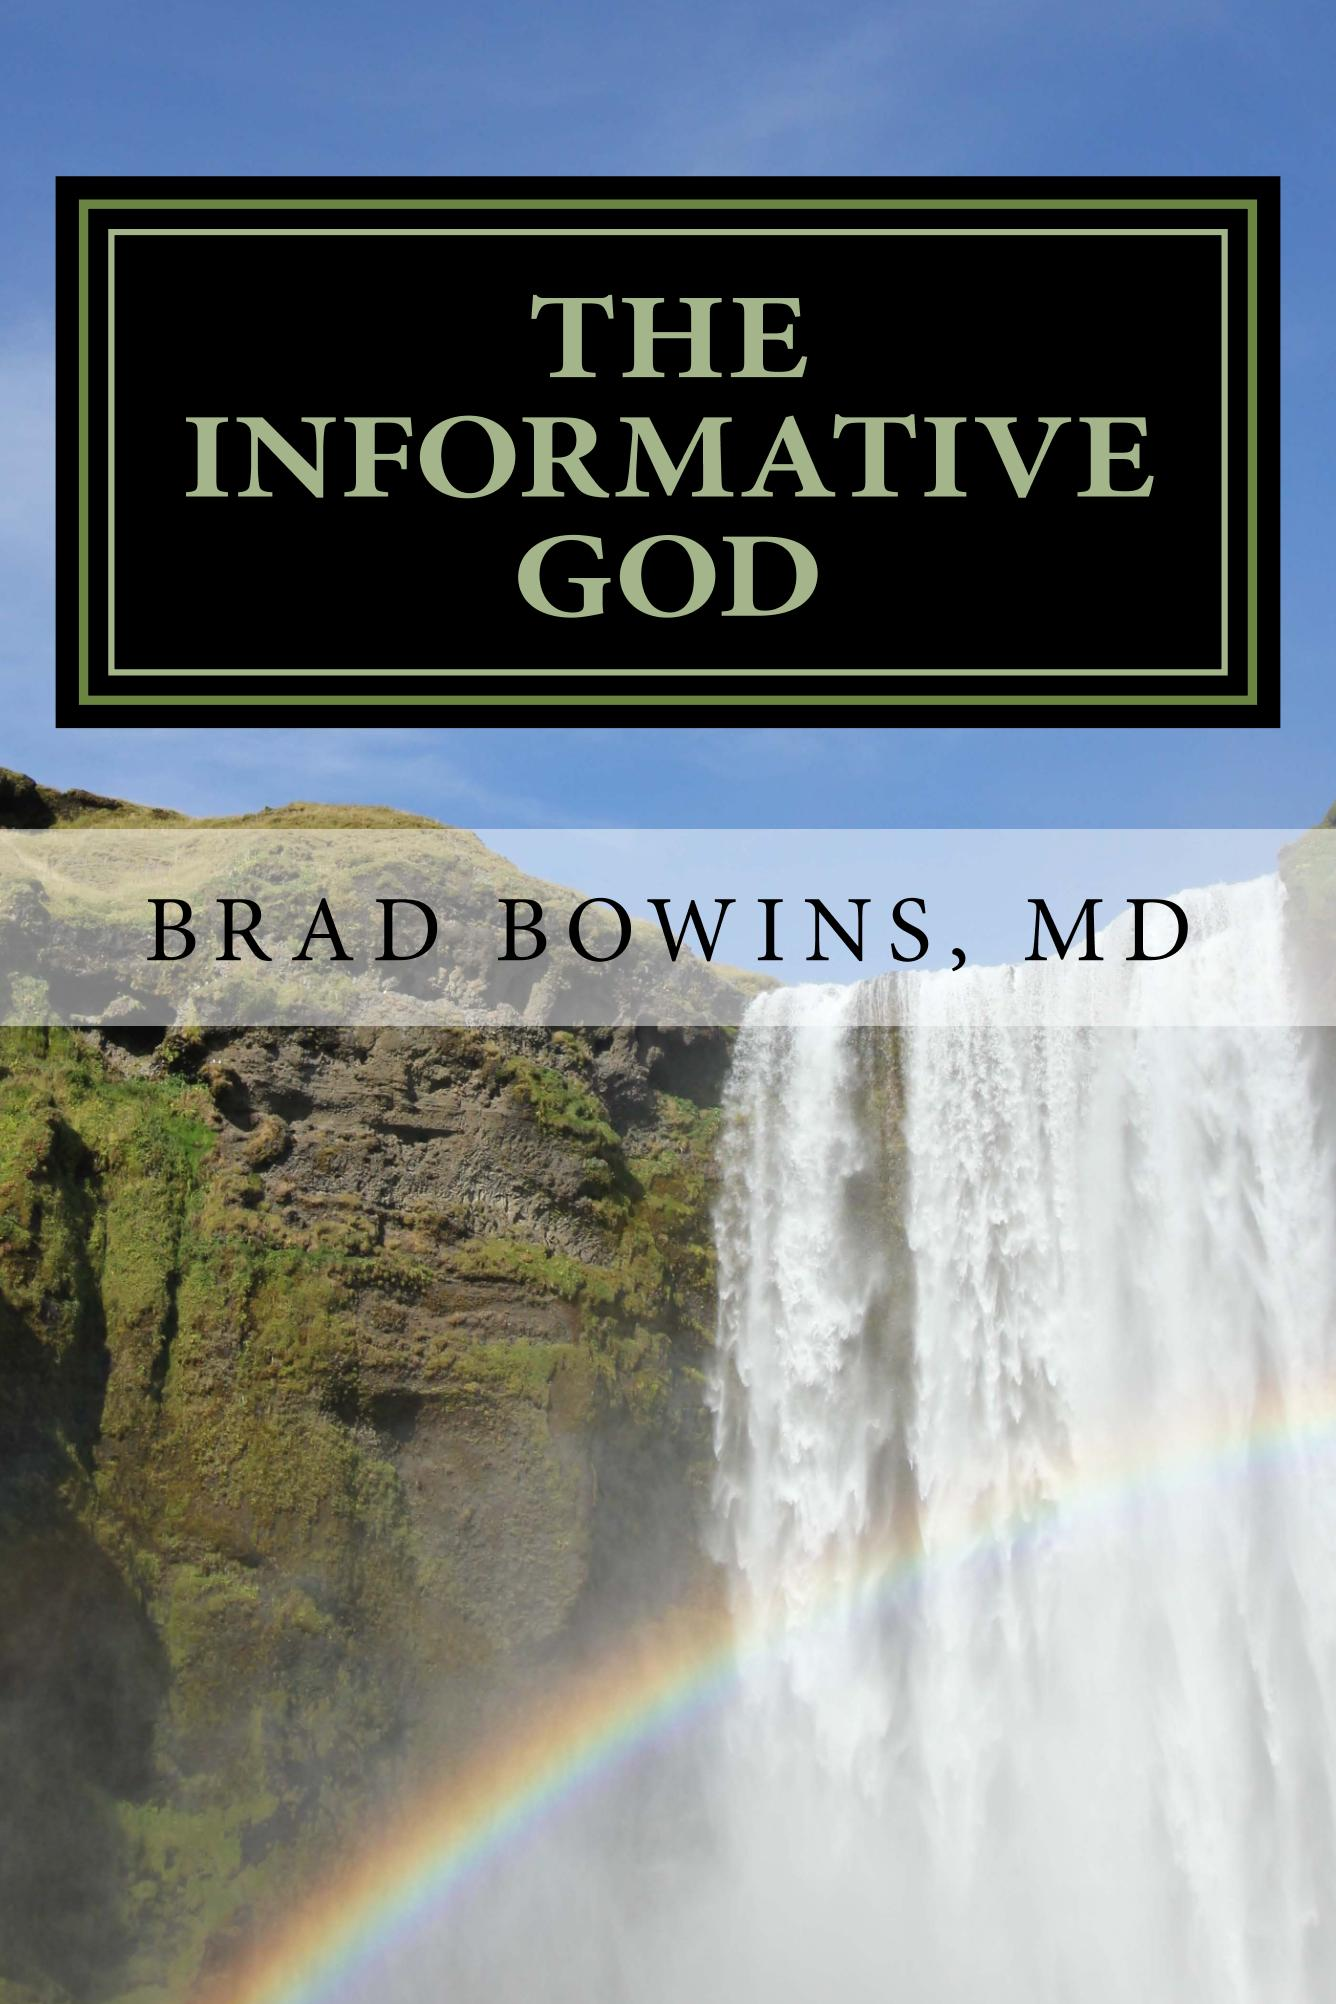 The Informative God